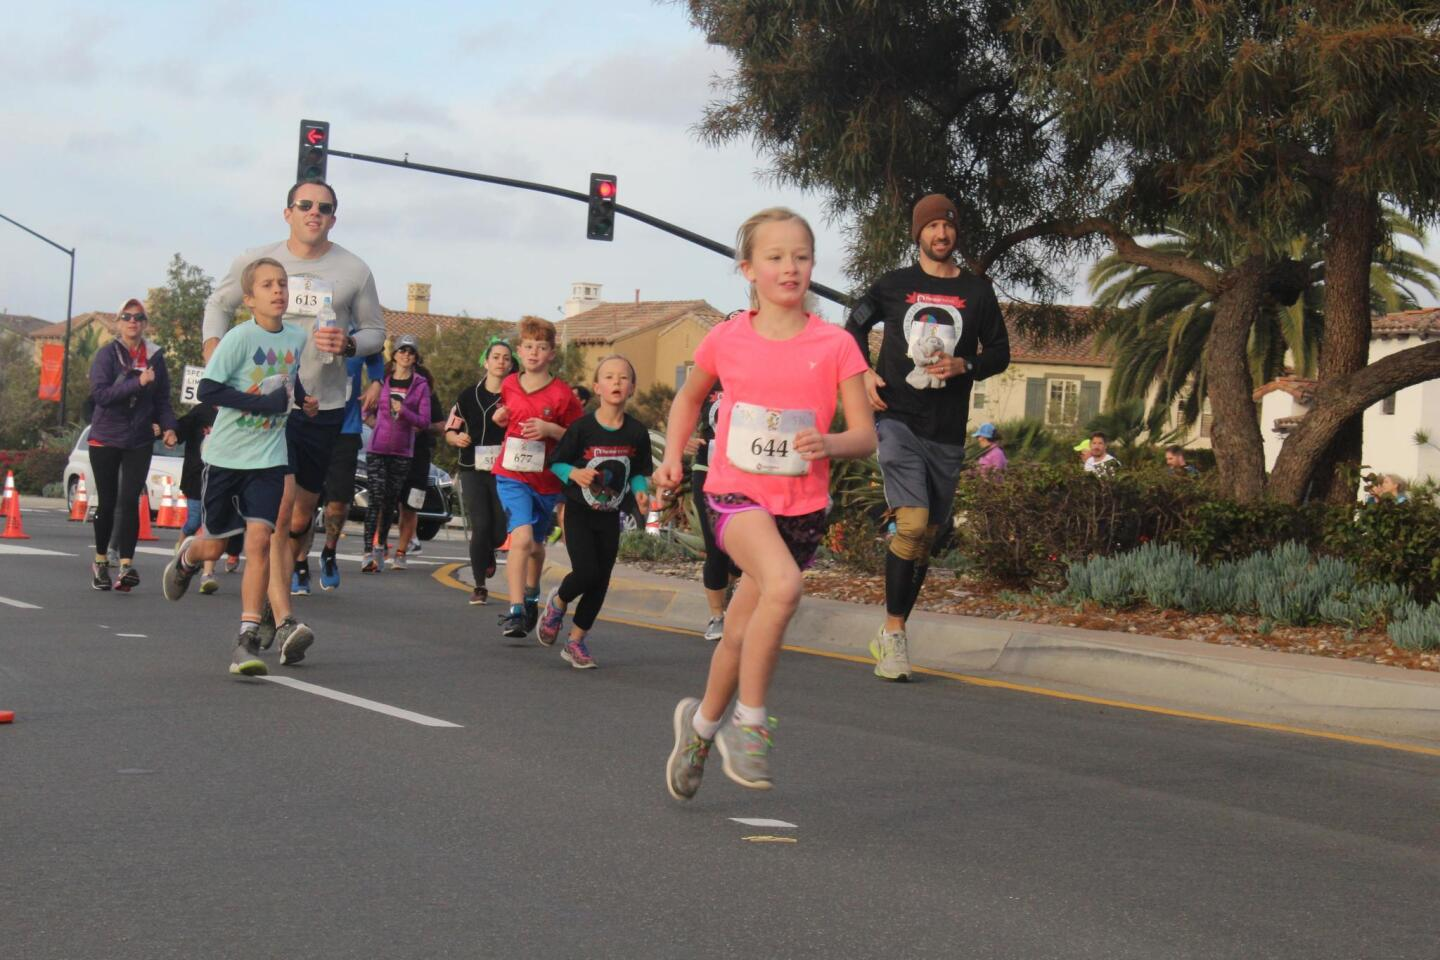 Strides for schools: Runners take on Carmel Valley 5K